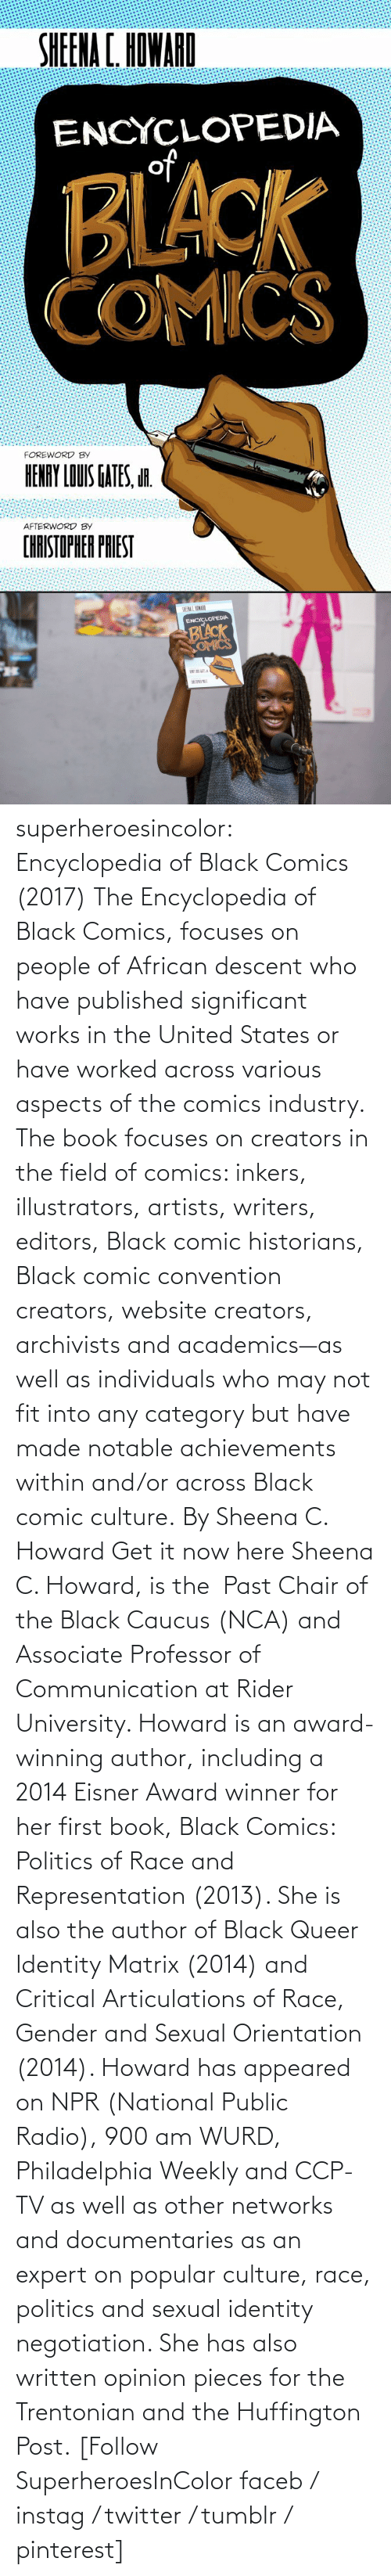 public: superheroesincolor: Encyclopedia of Black Comics (2017) The Encyclopedia of Black Comics, focuses on people of African descent who have published significant works in the United States or have worked across various aspects of the comics industry.  The book focuses on creators in the field of comics: inkers, illustrators, artists, writers, editors, Black comic historians, Black comic convention creators, website creators, archivists and academics—as well as individuals who may not fit into any category but have made notable achievements within and/or across Black comic culture. By Sheena C. Howard Get it now here  Sheena C. Howard, is the  Past Chair of the Black Caucus (NCA) and Associate Professor of Communication at Rider University. Howard is an award-winning author, including a 2014 Eisner Award winner for her first book, Black Comics: Politics of Race and Representation (2013). She is also the author of Black Queer Identity Matrix (2014) and Critical Articulations of Race, Gender and Sexual Orientation (2014). Howard has appeared on NPR (National Public Radio), 900 am WURD, Philadelphia Weekly and CCP-TV as well as other networks and documentaries as an expert on popular culture, race, politics and sexual identity negotiation. She has also written opinion pieces for the Trentonian and the Huffington Post.   [Follow SuperheroesInColor faceb / instag / twitter / tumblr / pinterest]